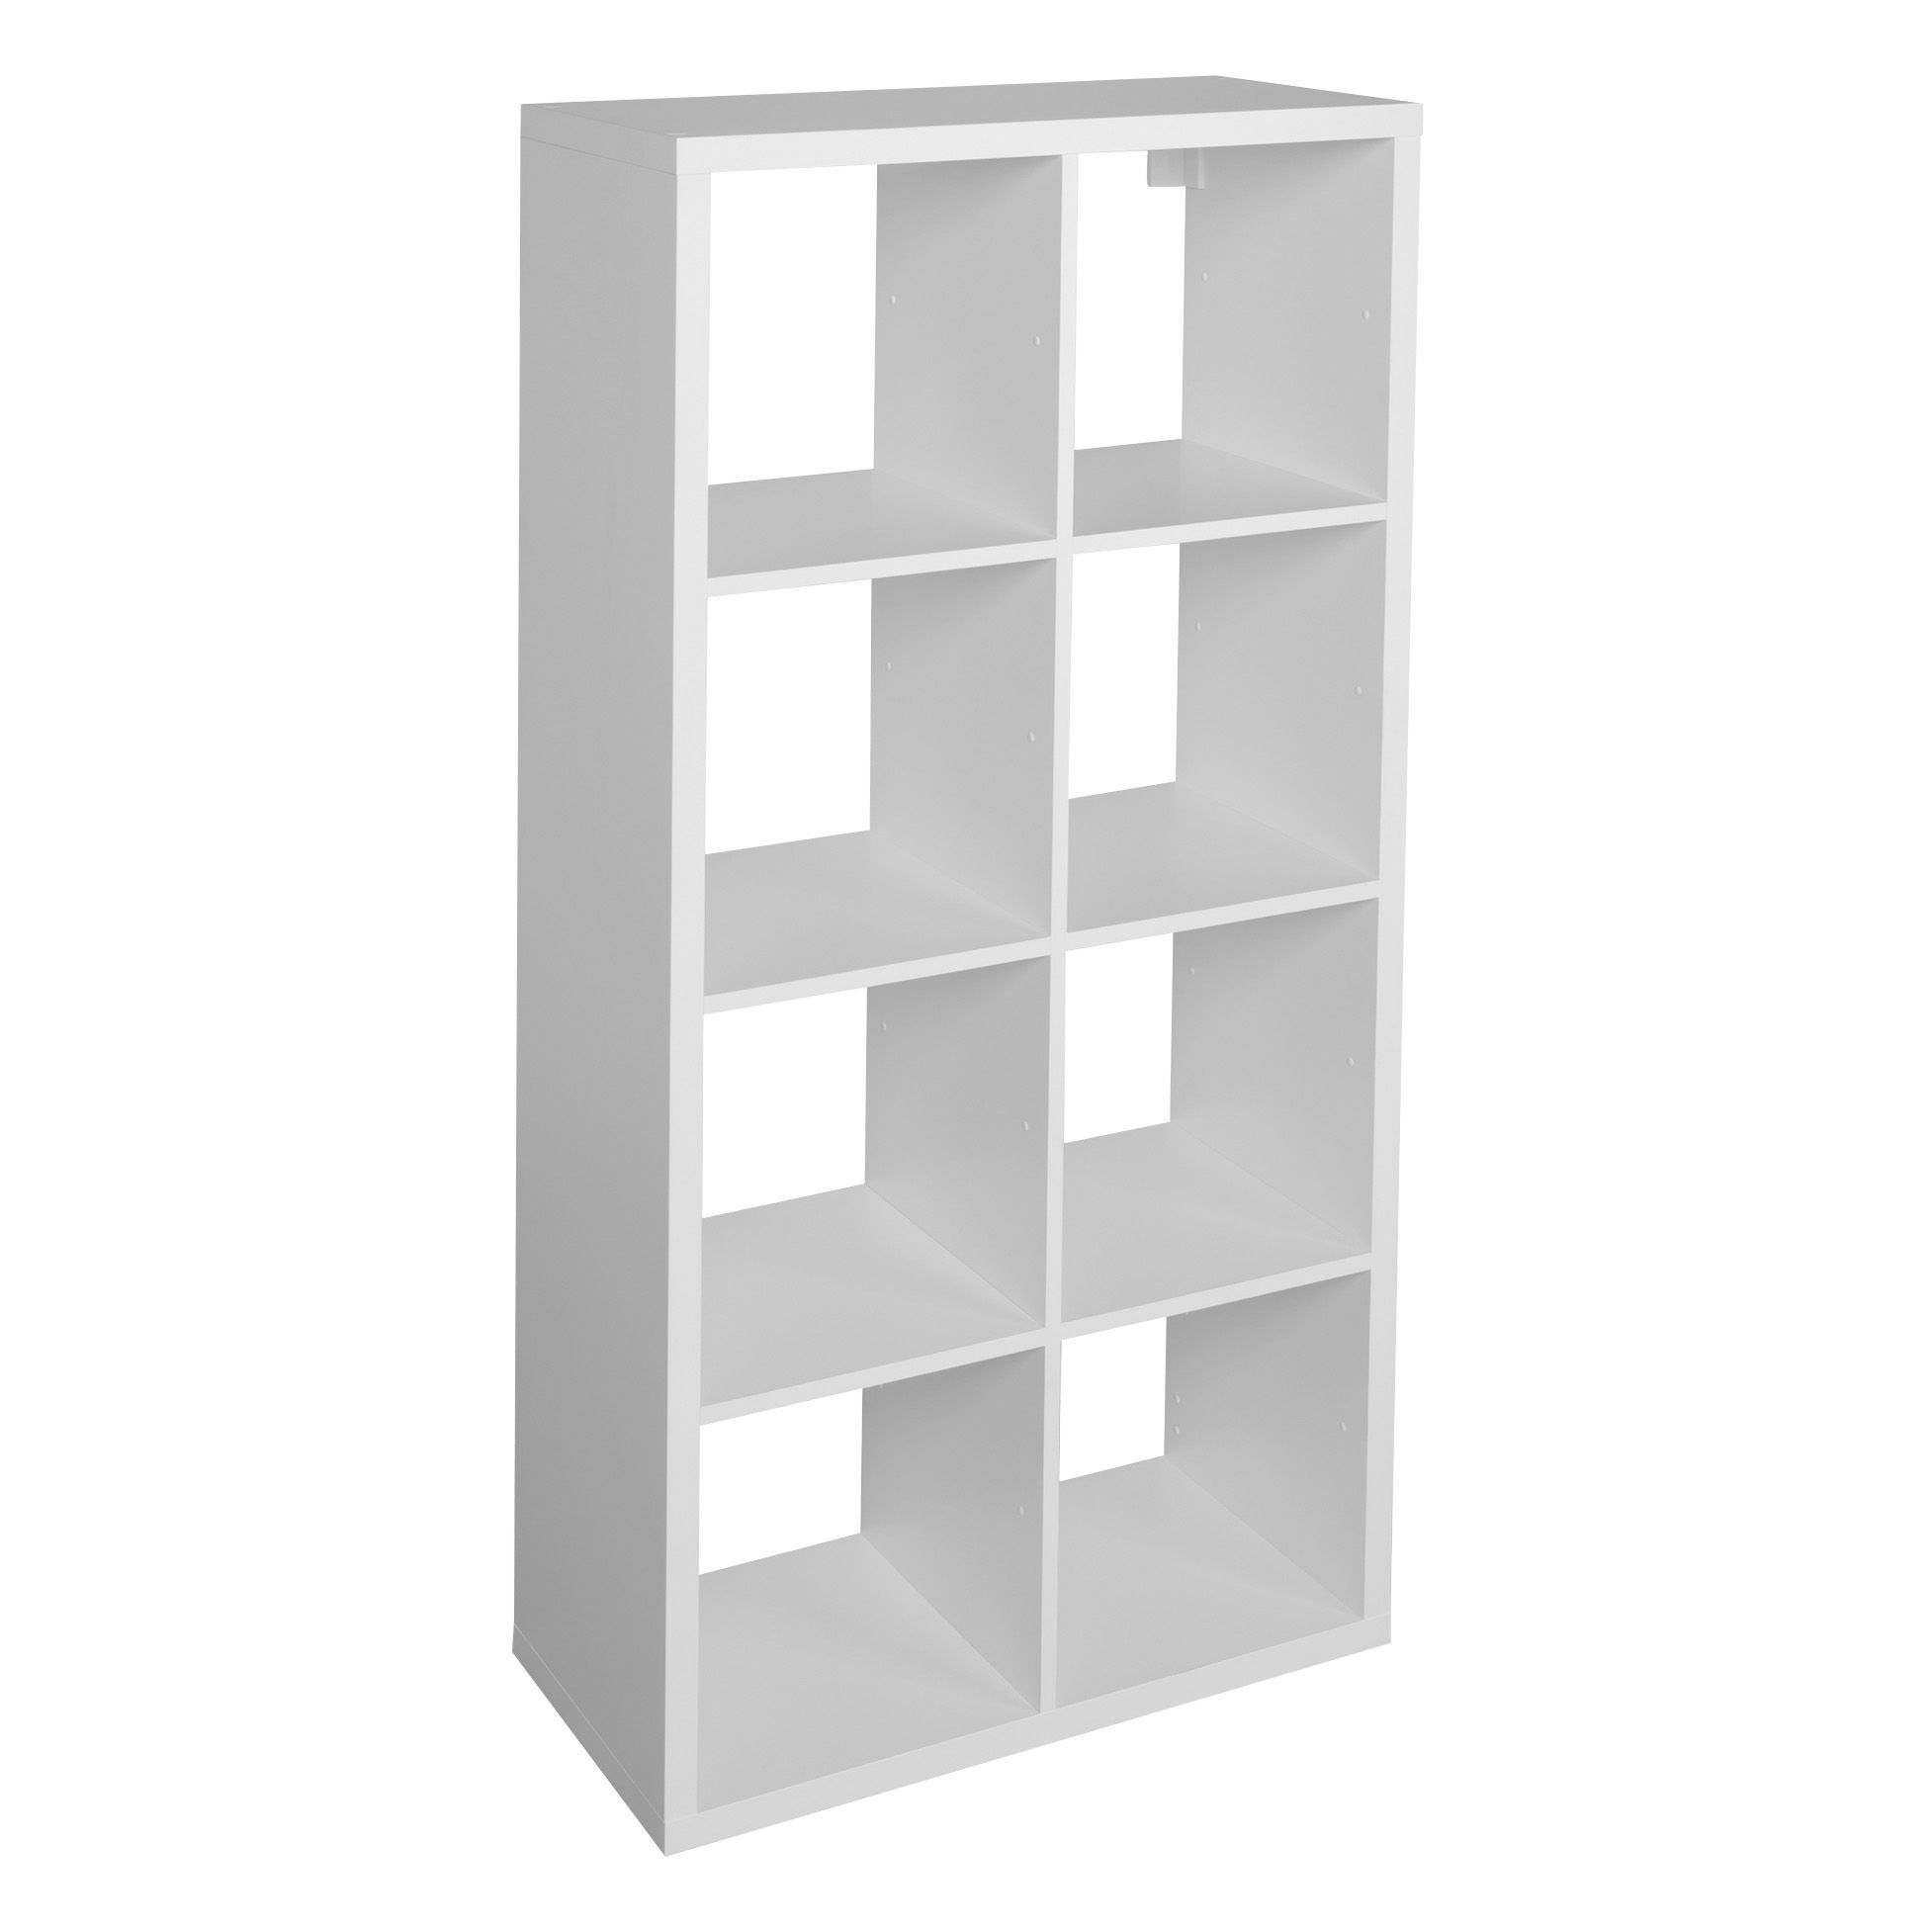 form mixxit white cube shelving (h)mm (w)mm  cube shelving  - form mixxit white cube shelving (h)mm (w)mm  cube shelving unitshelving and play areas